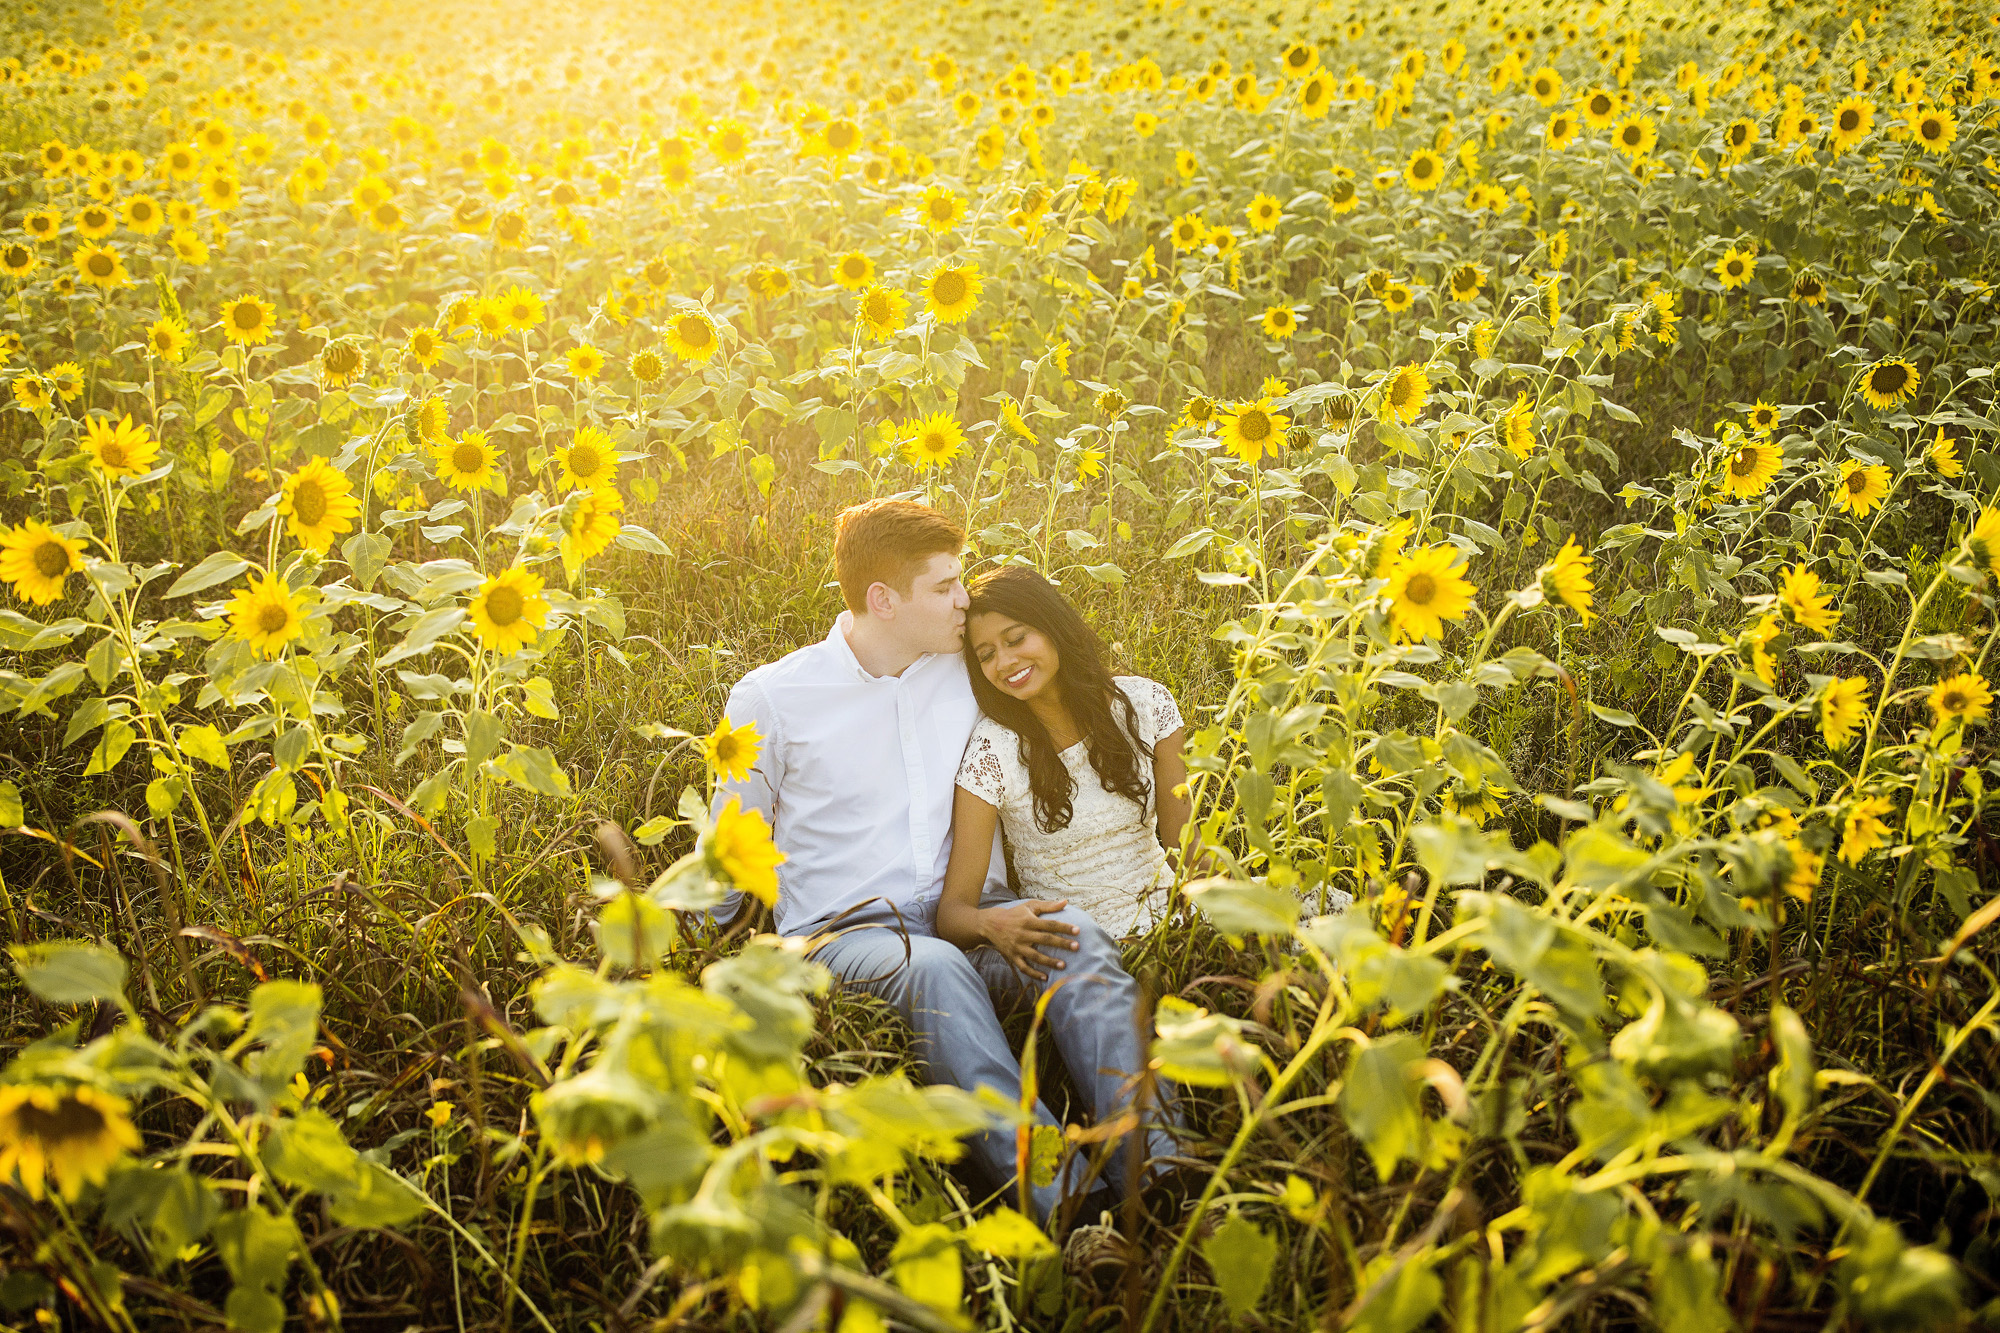 Seriously_Sabrina_Photography_Lexington_Midway_Kentucky_Engagement_Merefield_Sunflowers_Naz_and_Drew8.jpg